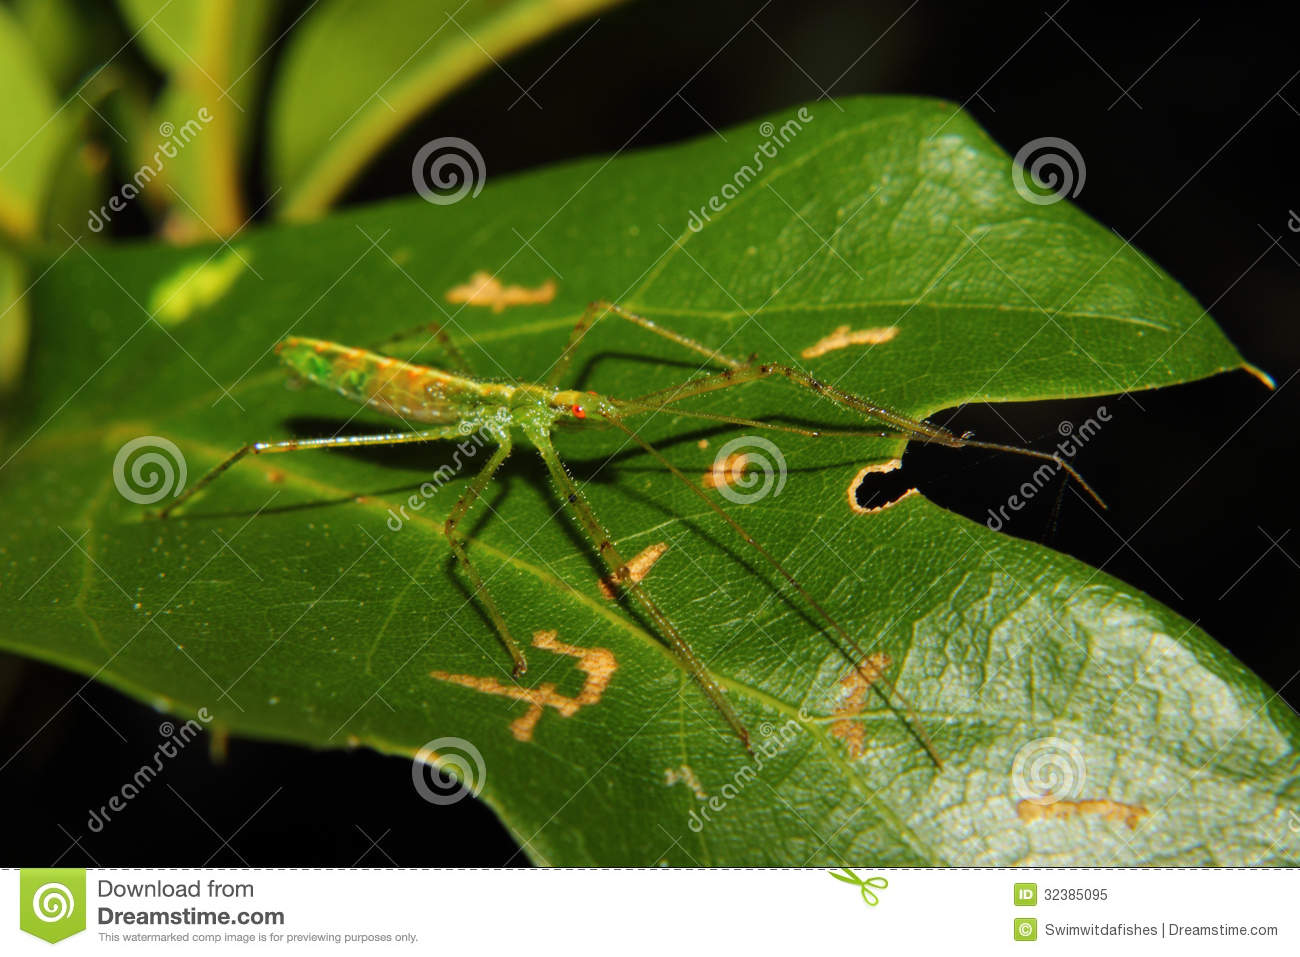 green assassin bug nymph royalty free stock photo image 32385095. Black Bedroom Furniture Sets. Home Design Ideas